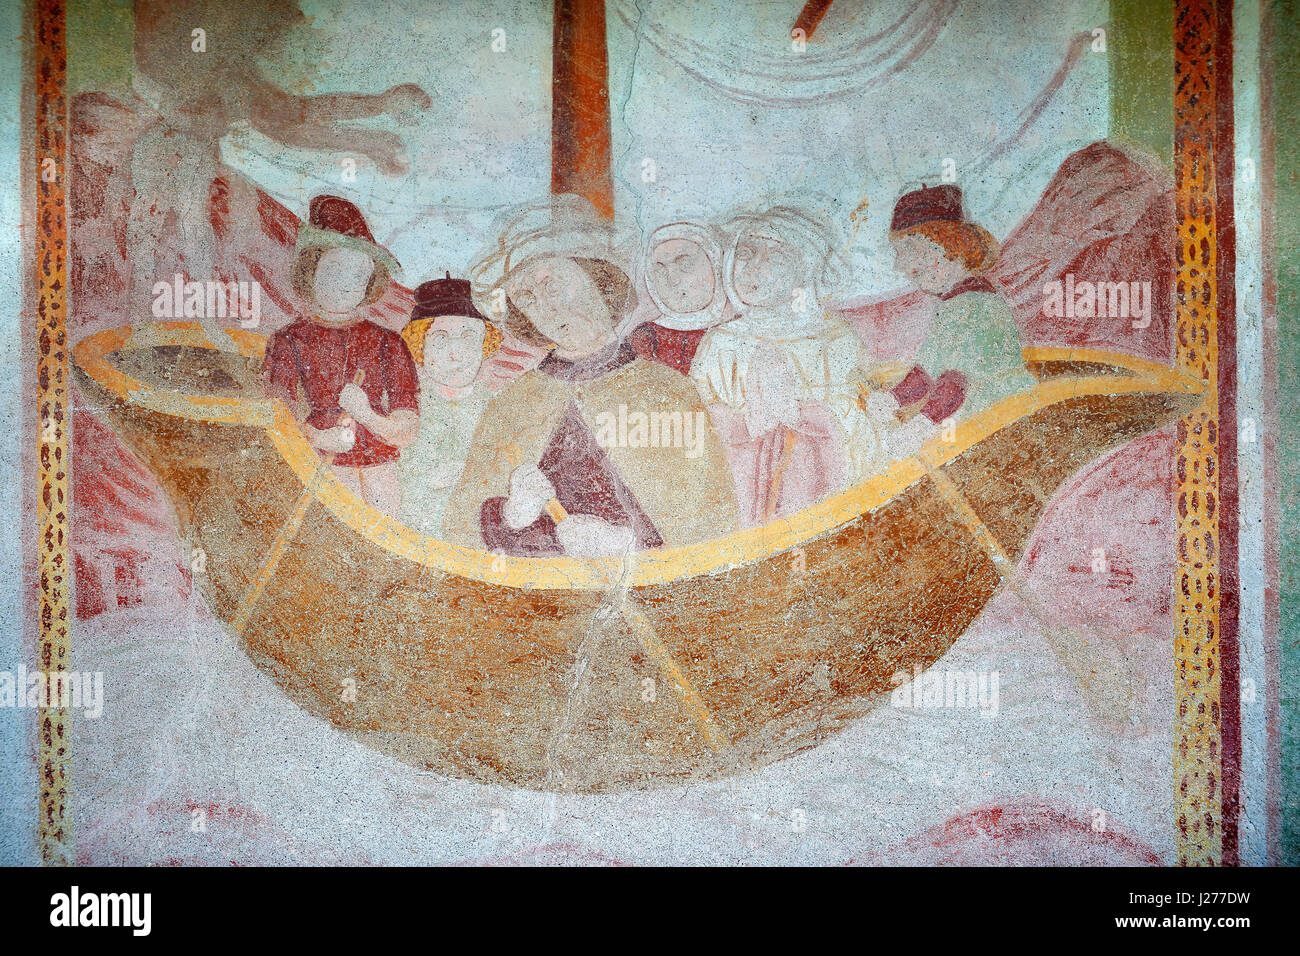 Church wall murals stock photos church wall murals stock for Christian mural